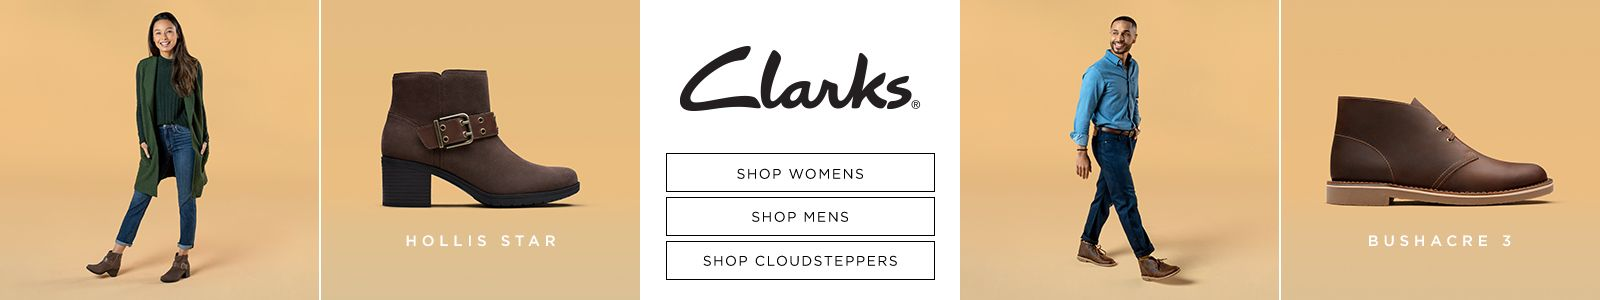 Hollis Star, Clarks, Shop Womens, Shop Mens, Shop Cloudsteppers Bushacre